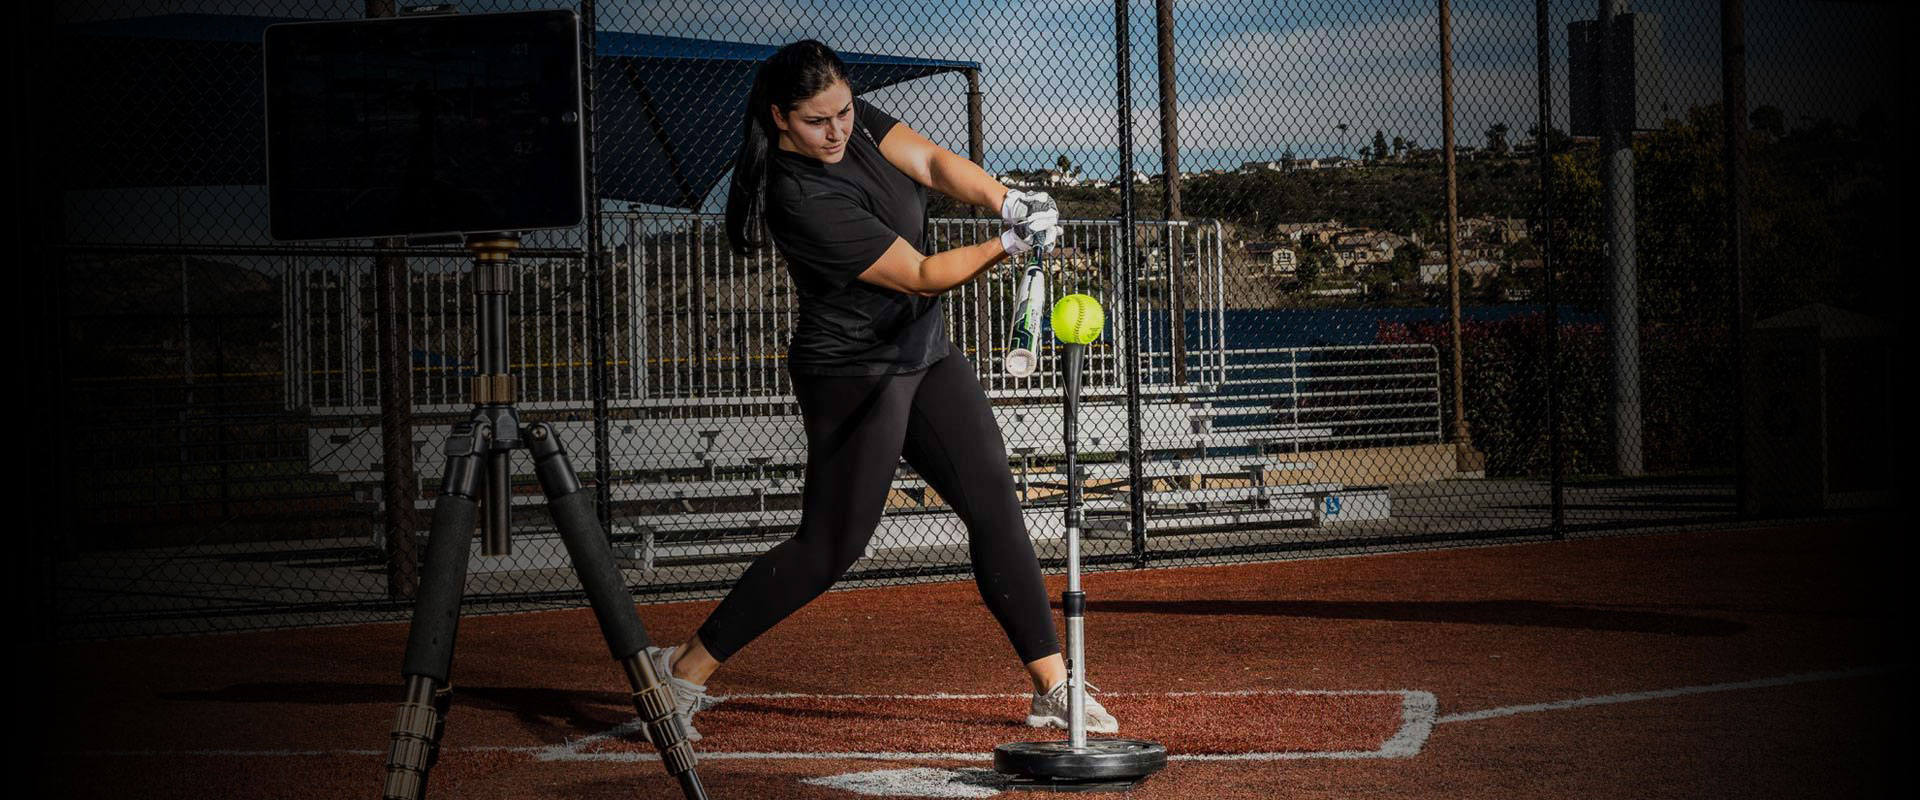 Epstein Hitting Select Baseball Amp Softball Hitting